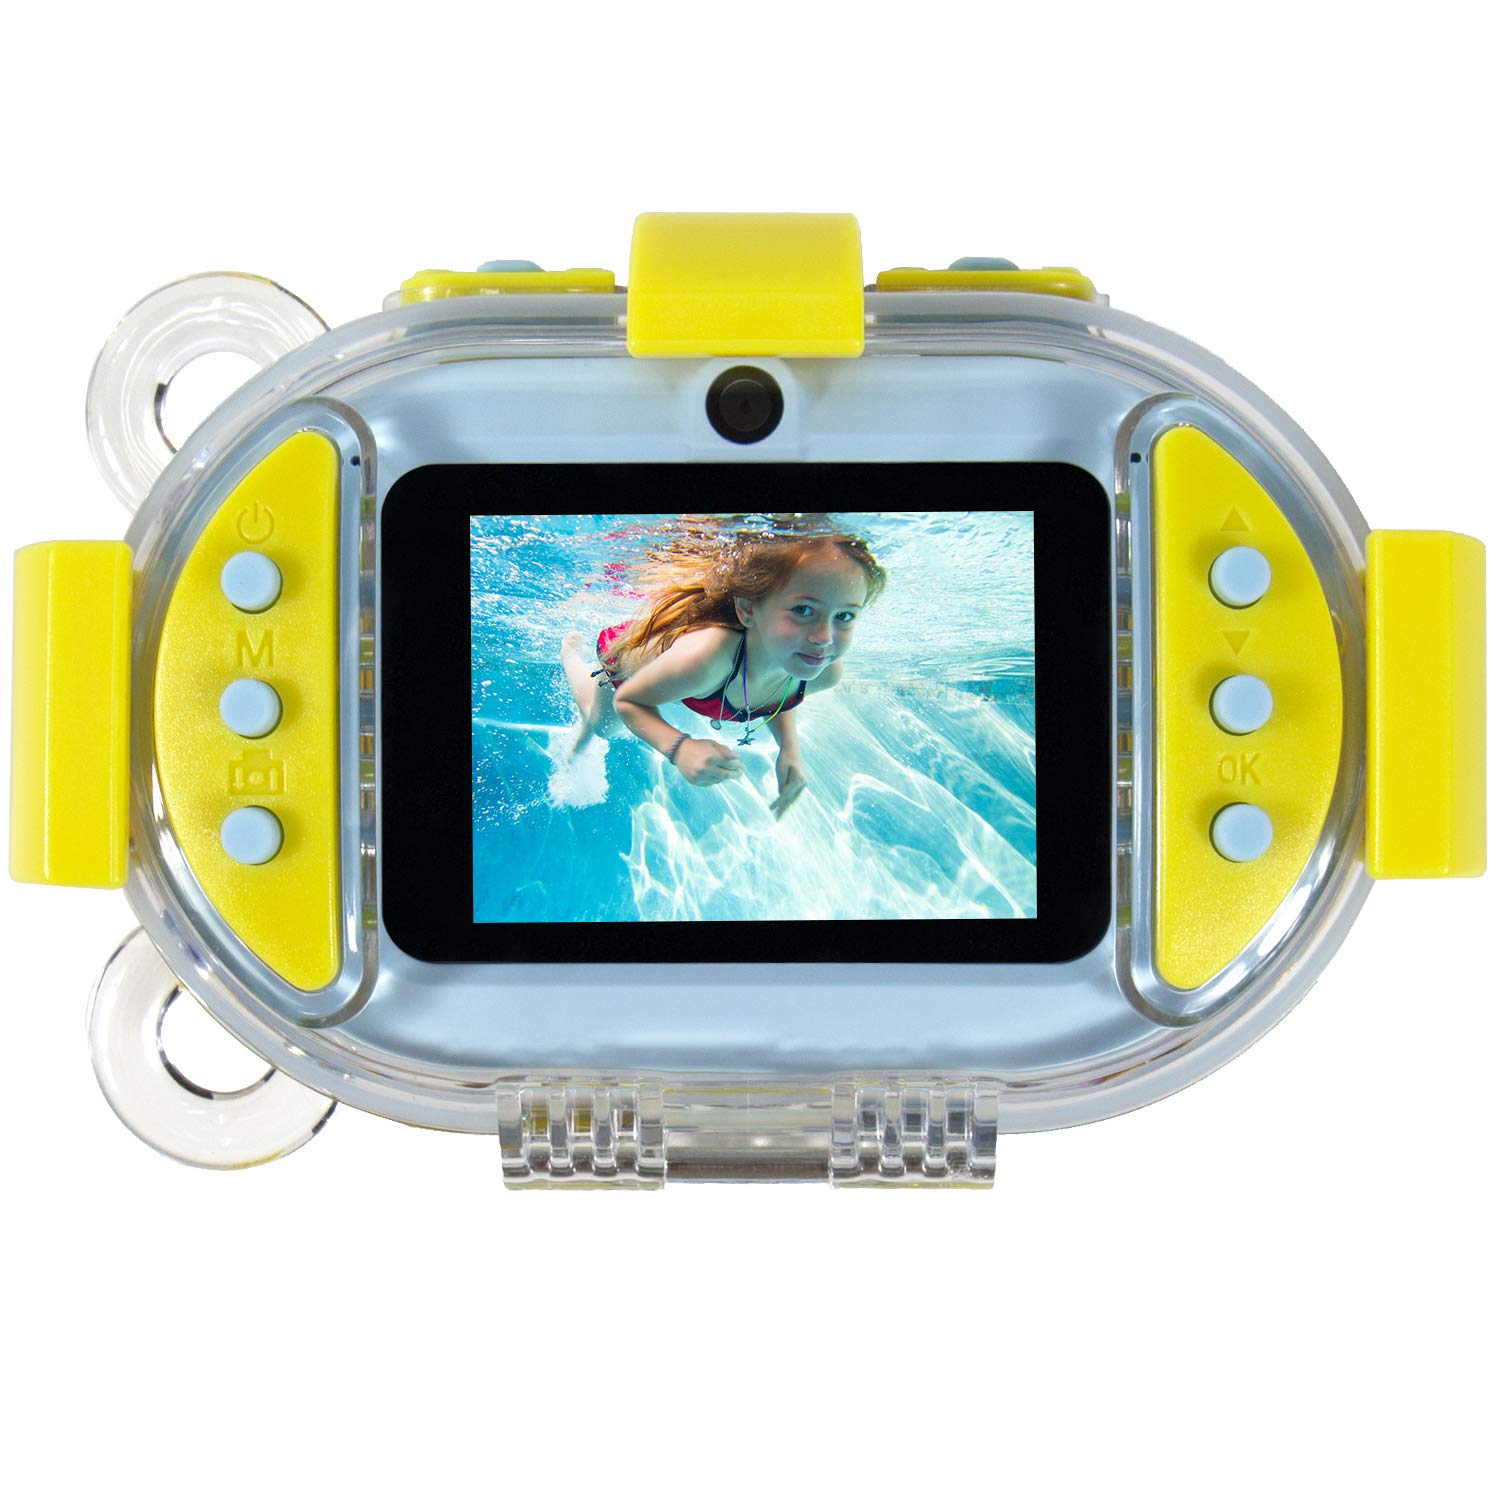 eProud Waterproof Camera for Kids, Underwater Kids Camera Gift Toy, HD 1080P Photo Video Dual Lens Shockproof Digital Camera with 2.4 Inches 32G Memory Card Reader for Boys and Girls (Blue)